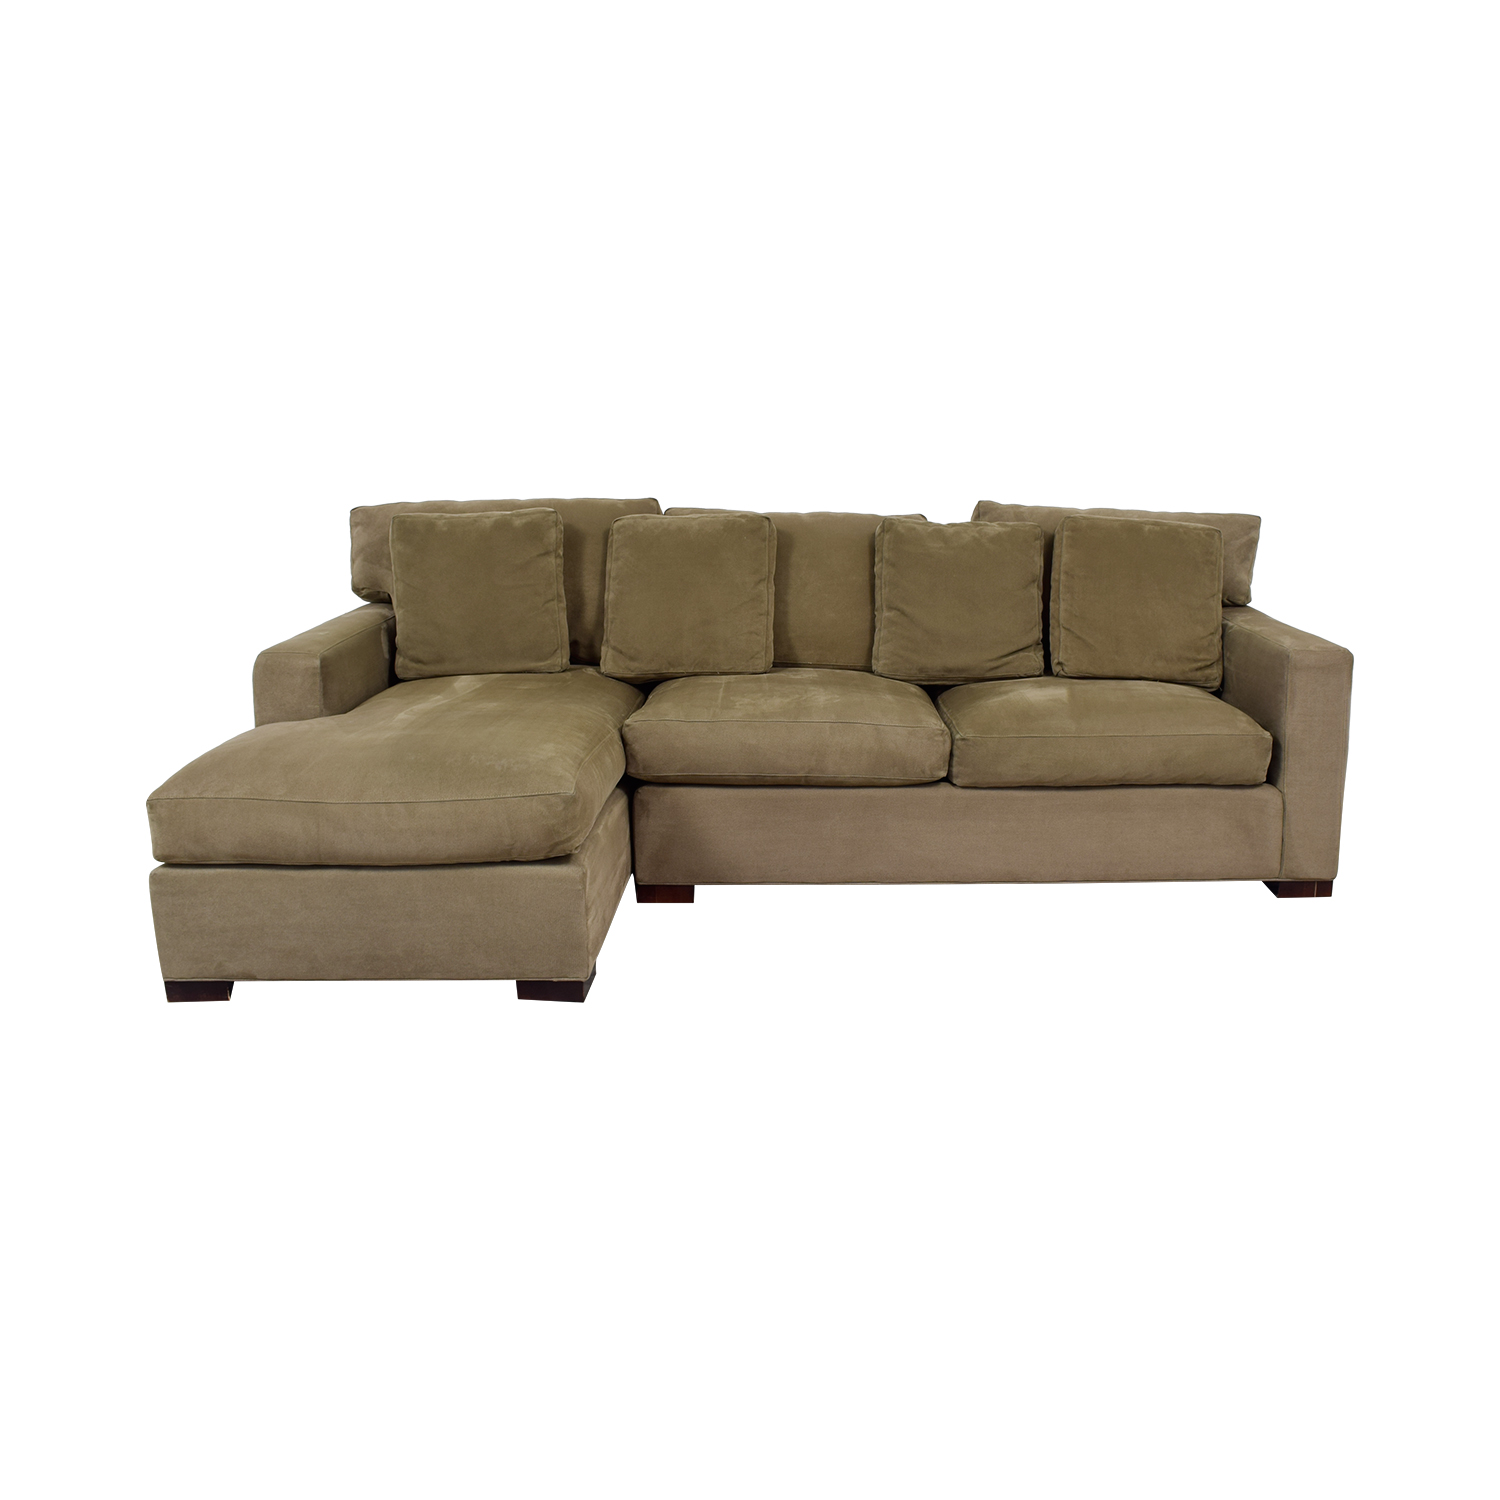 Crate & Barrel Crate & Barrel Axis II Green Chaise Sectional green